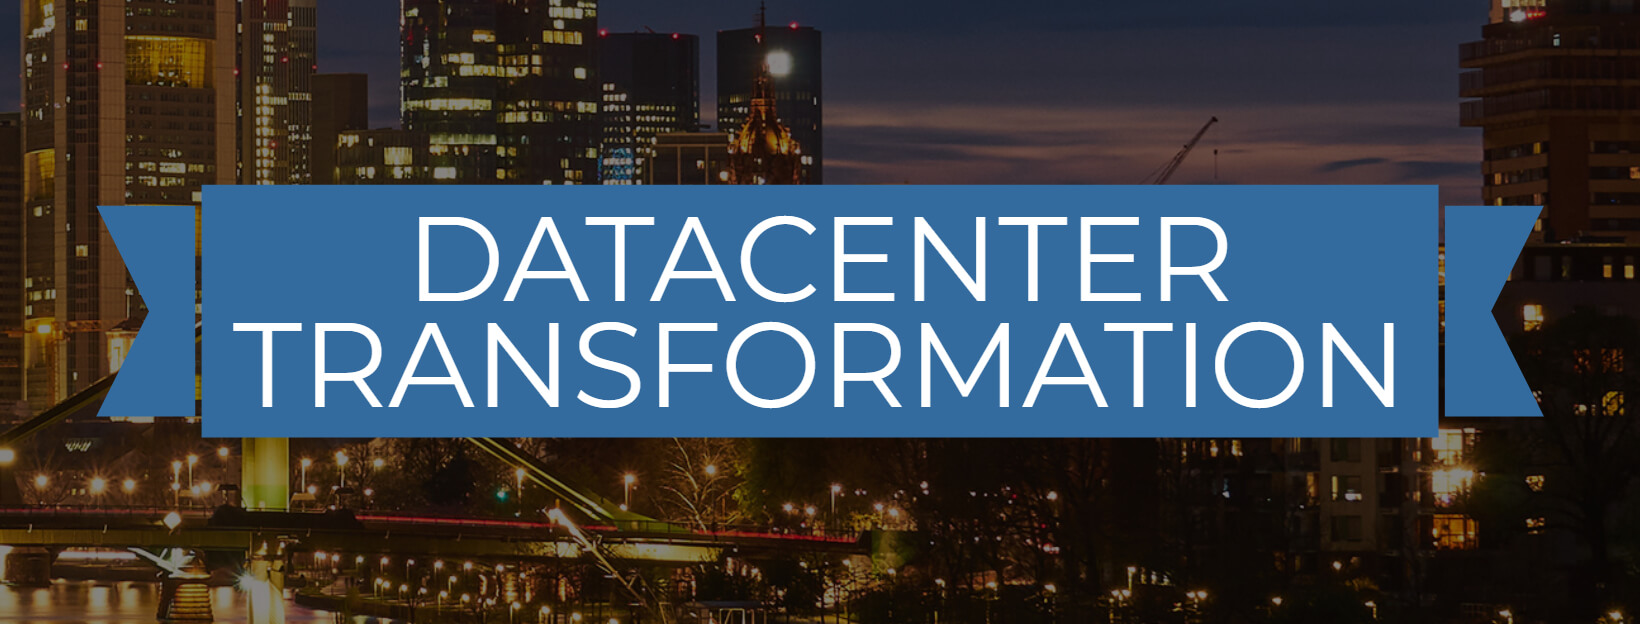 Announcing Keynote Speaker for Datacenter Transformation 2016!